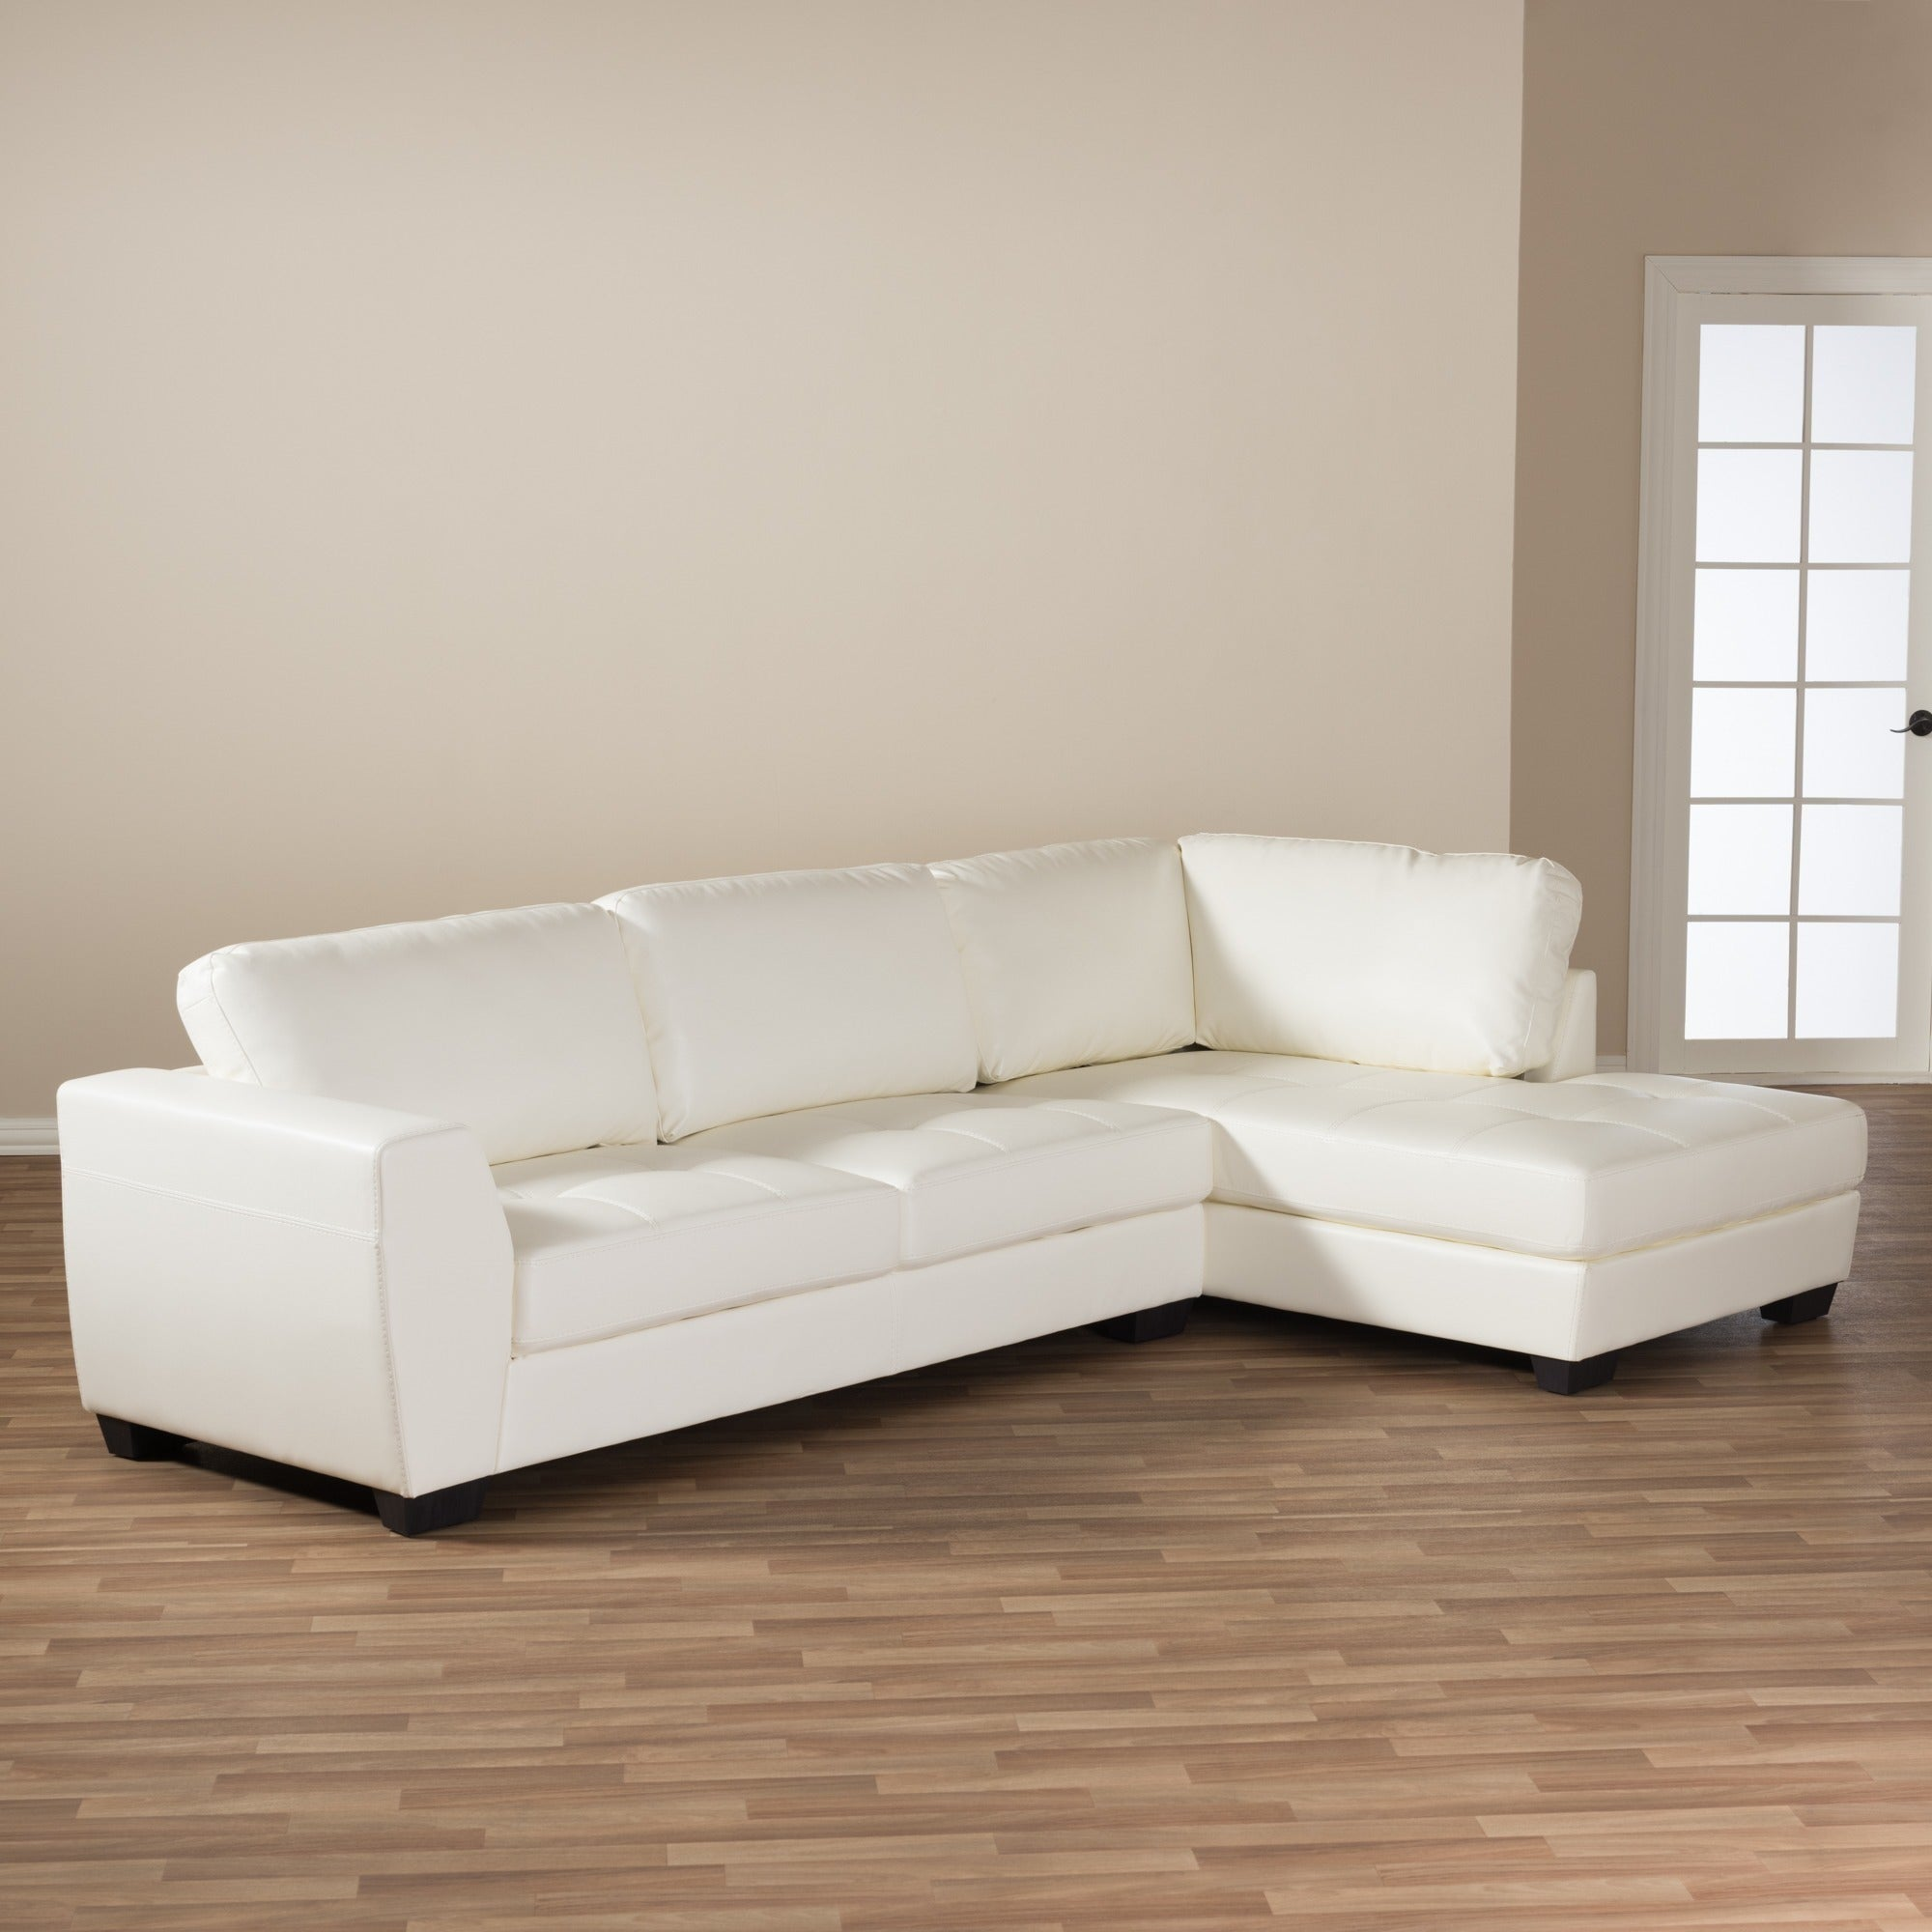 White Leather Sectional Sofas Online At Our